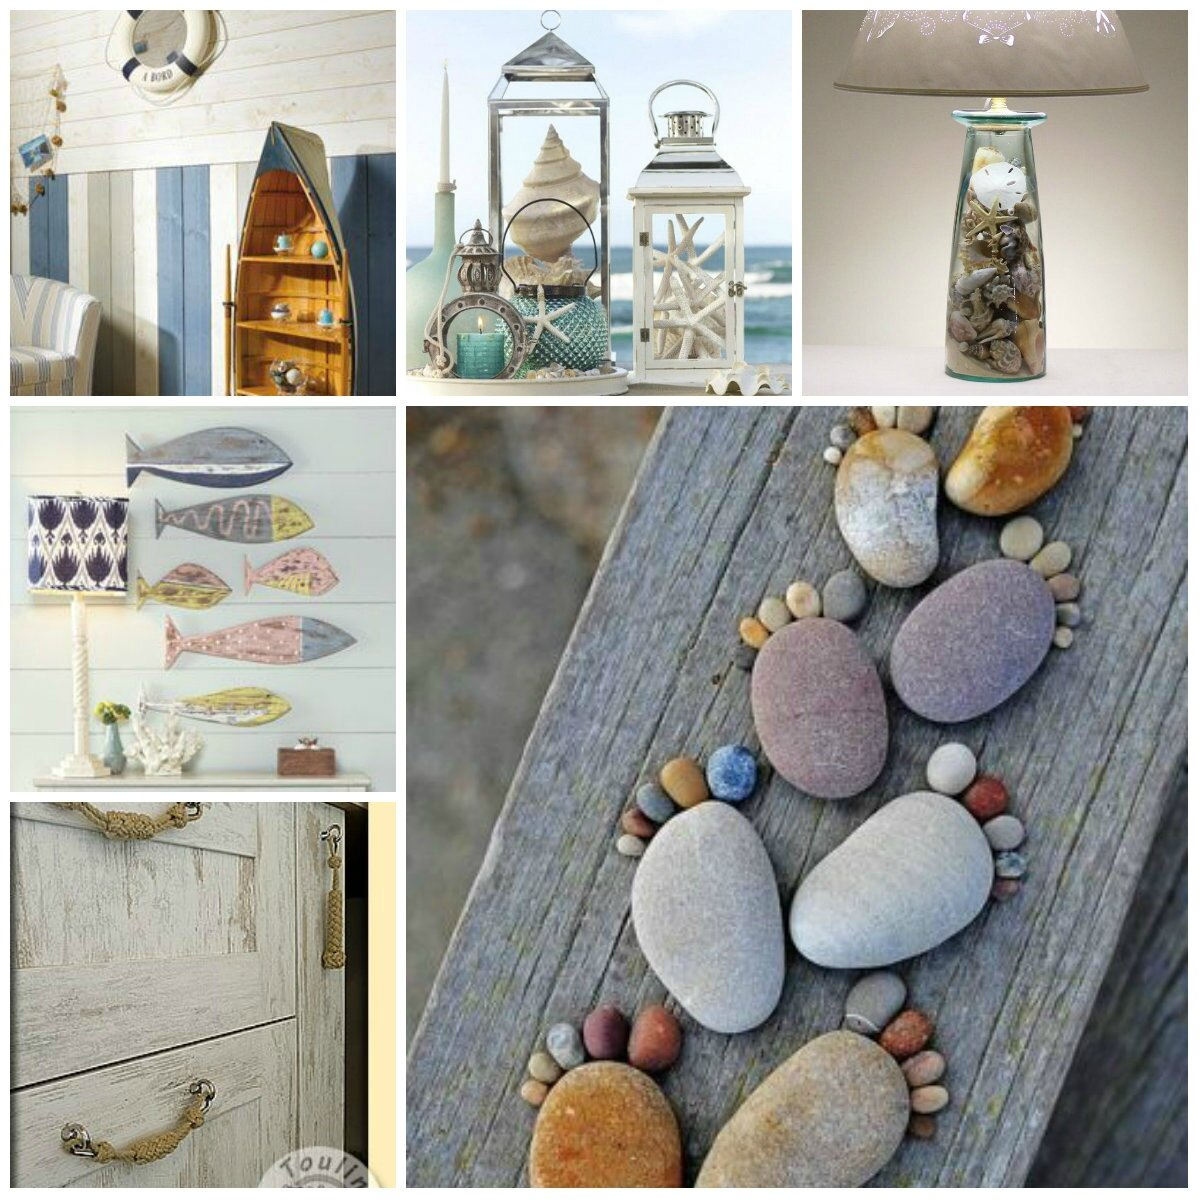 D coration maison theme mer for Pour la maison deco